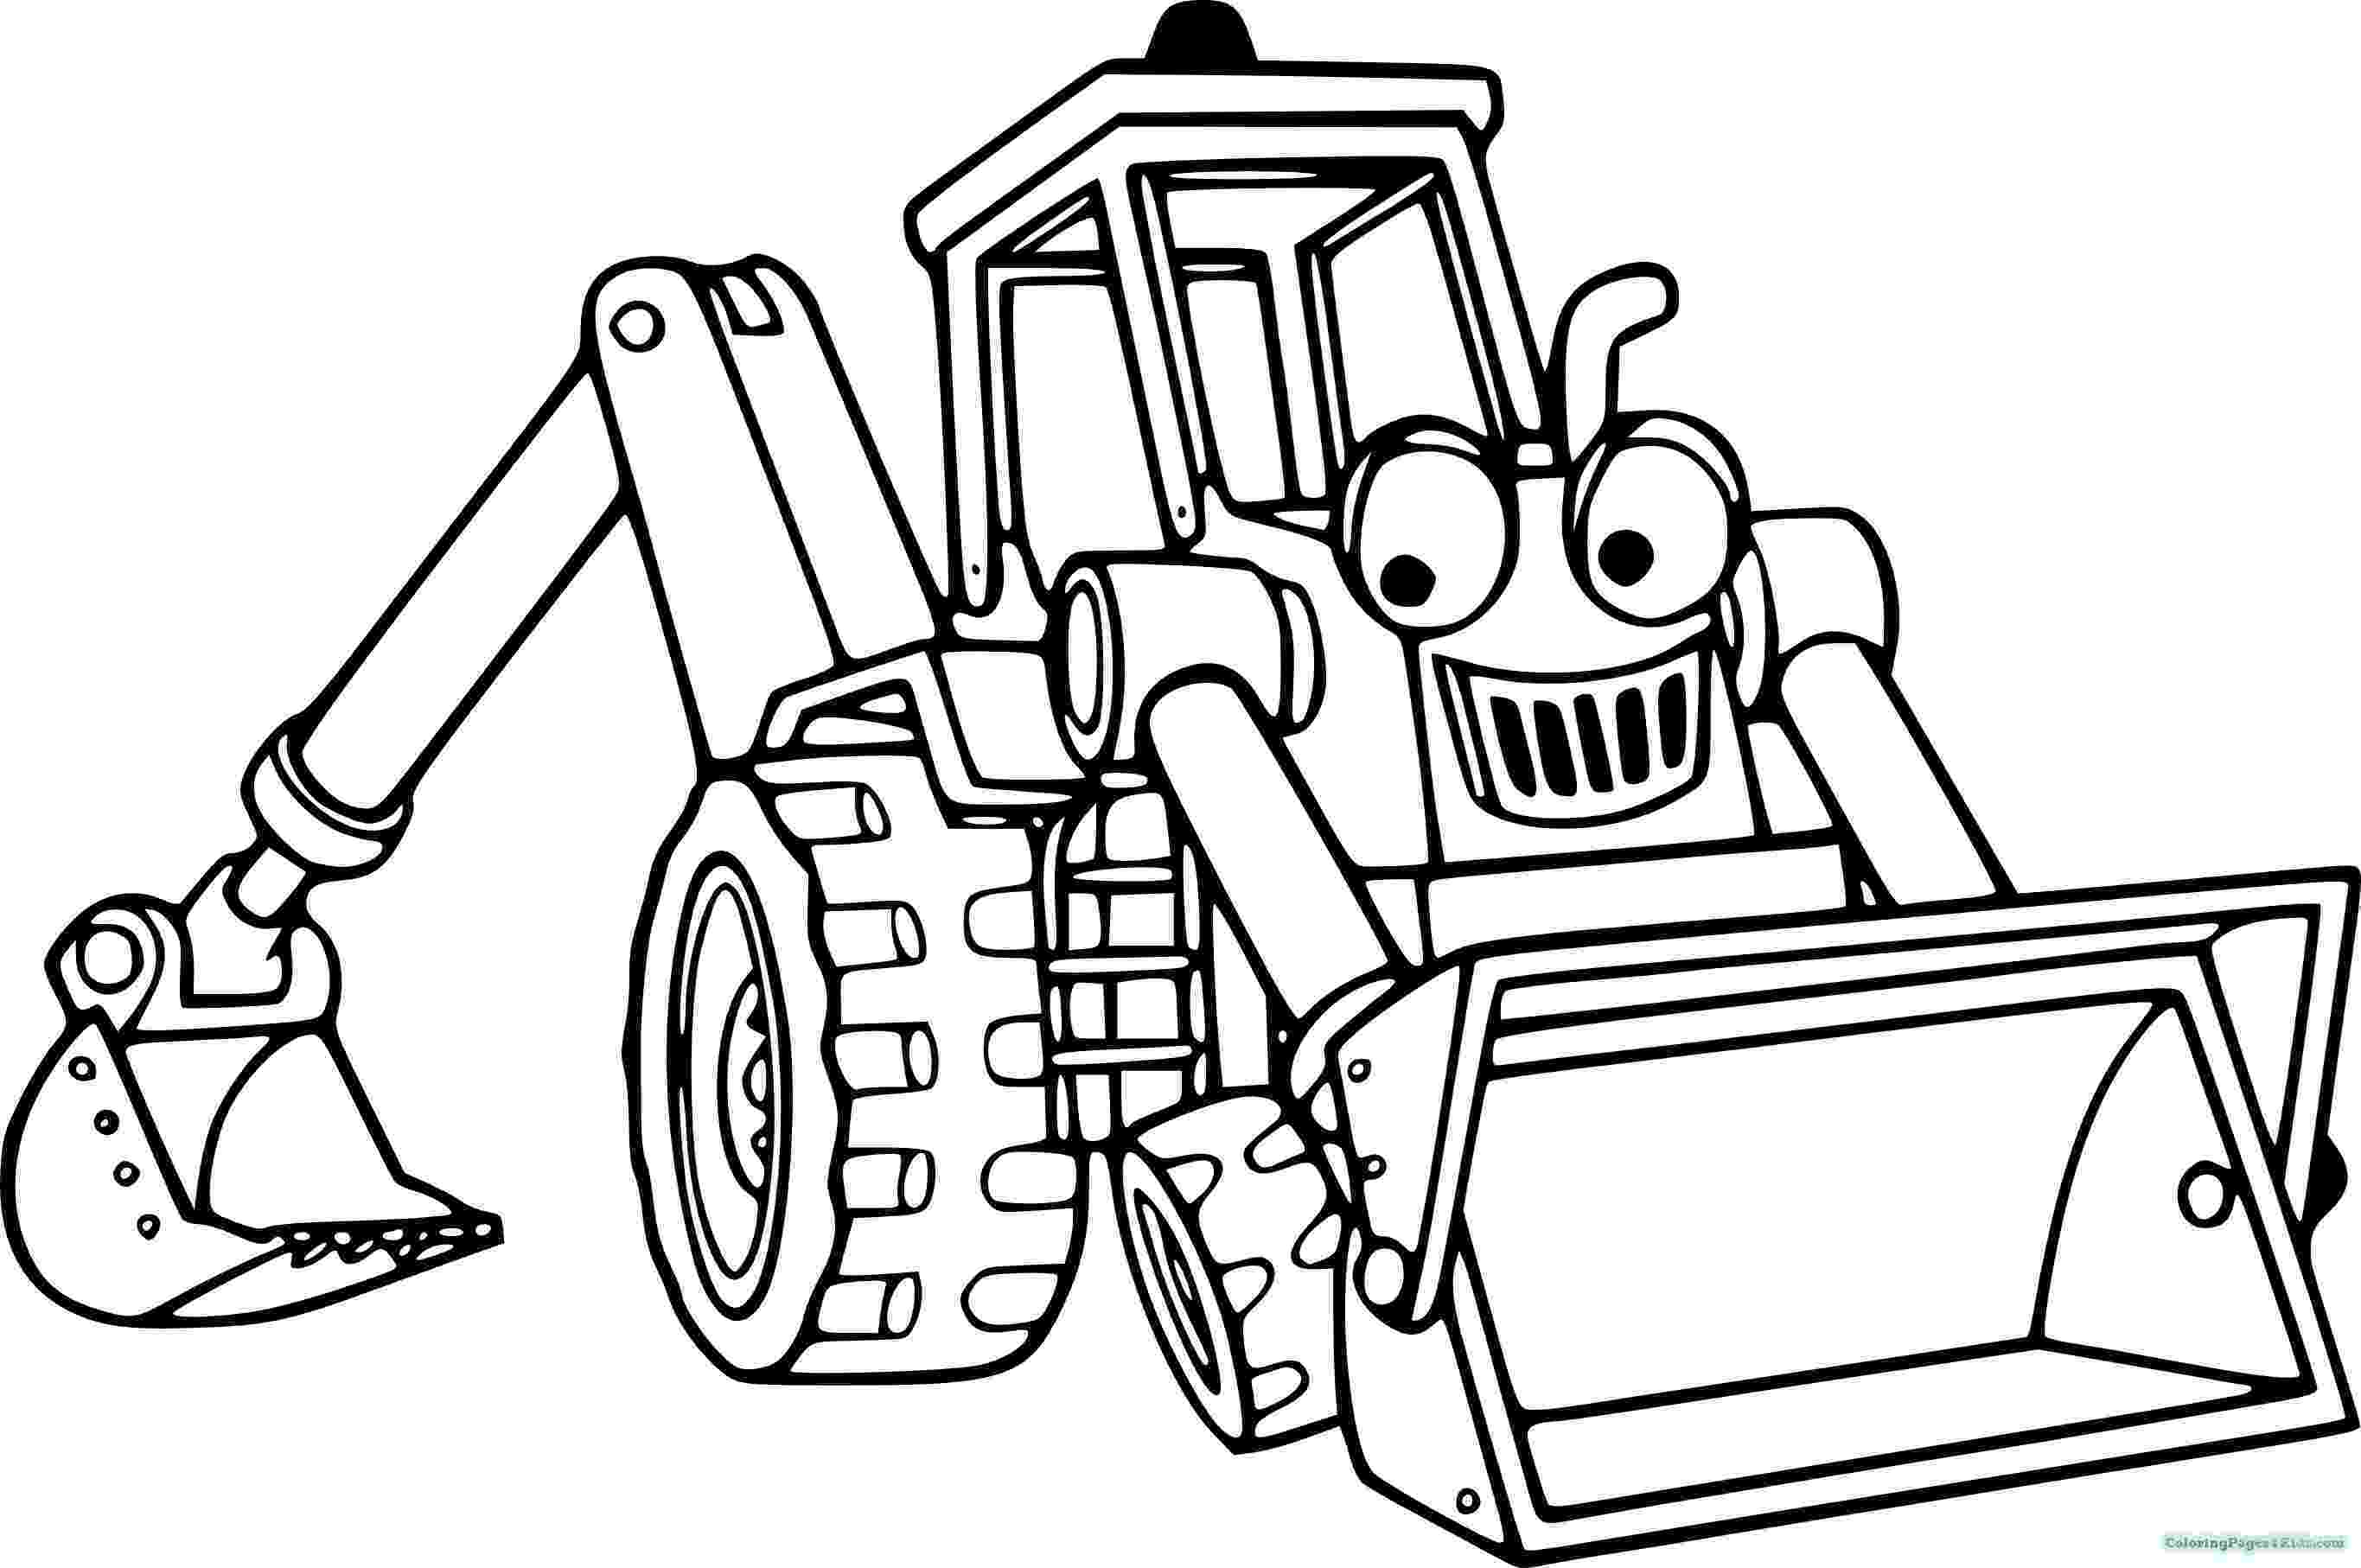 coloring pages of tractors johnny tractor free coloring pages coloring pages for kids of pages tractors coloring